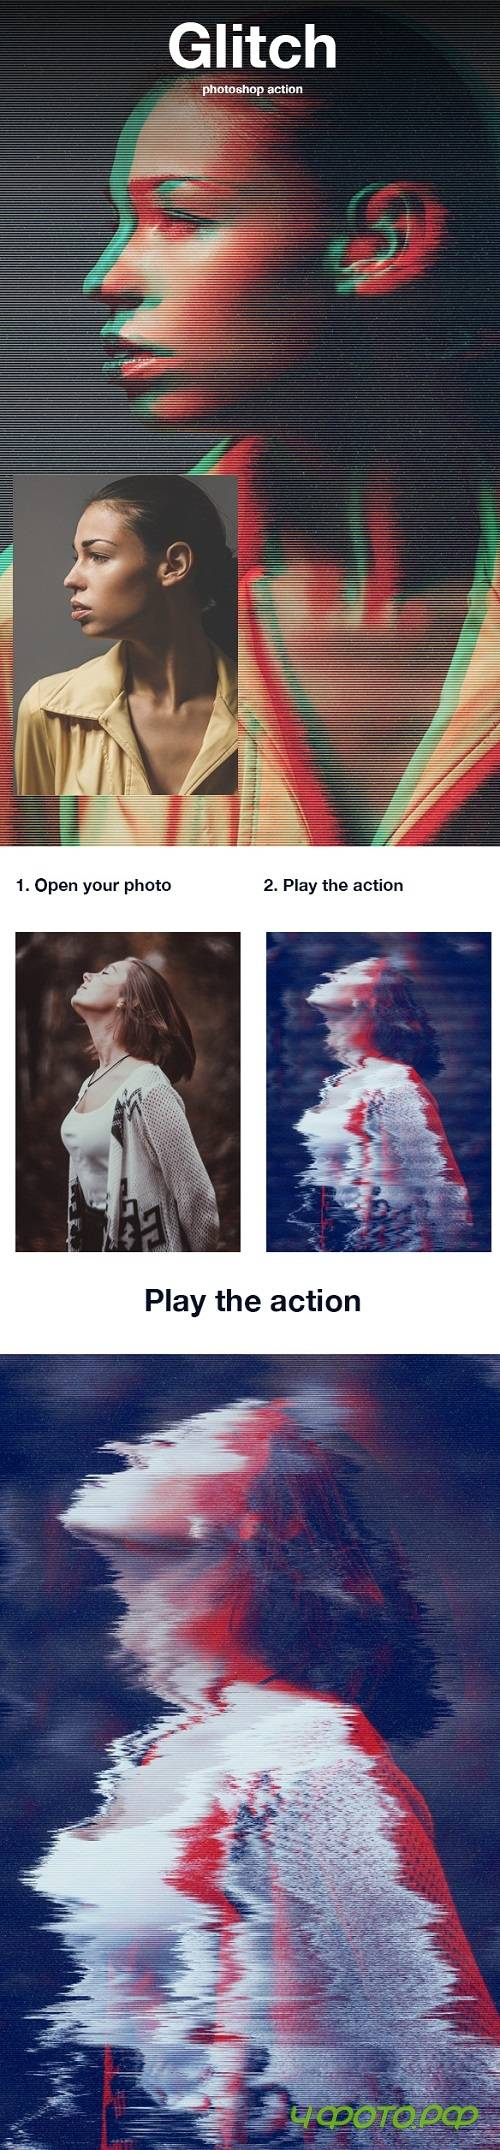 Glitch Photoshop Action | Photo Effects - 20806451